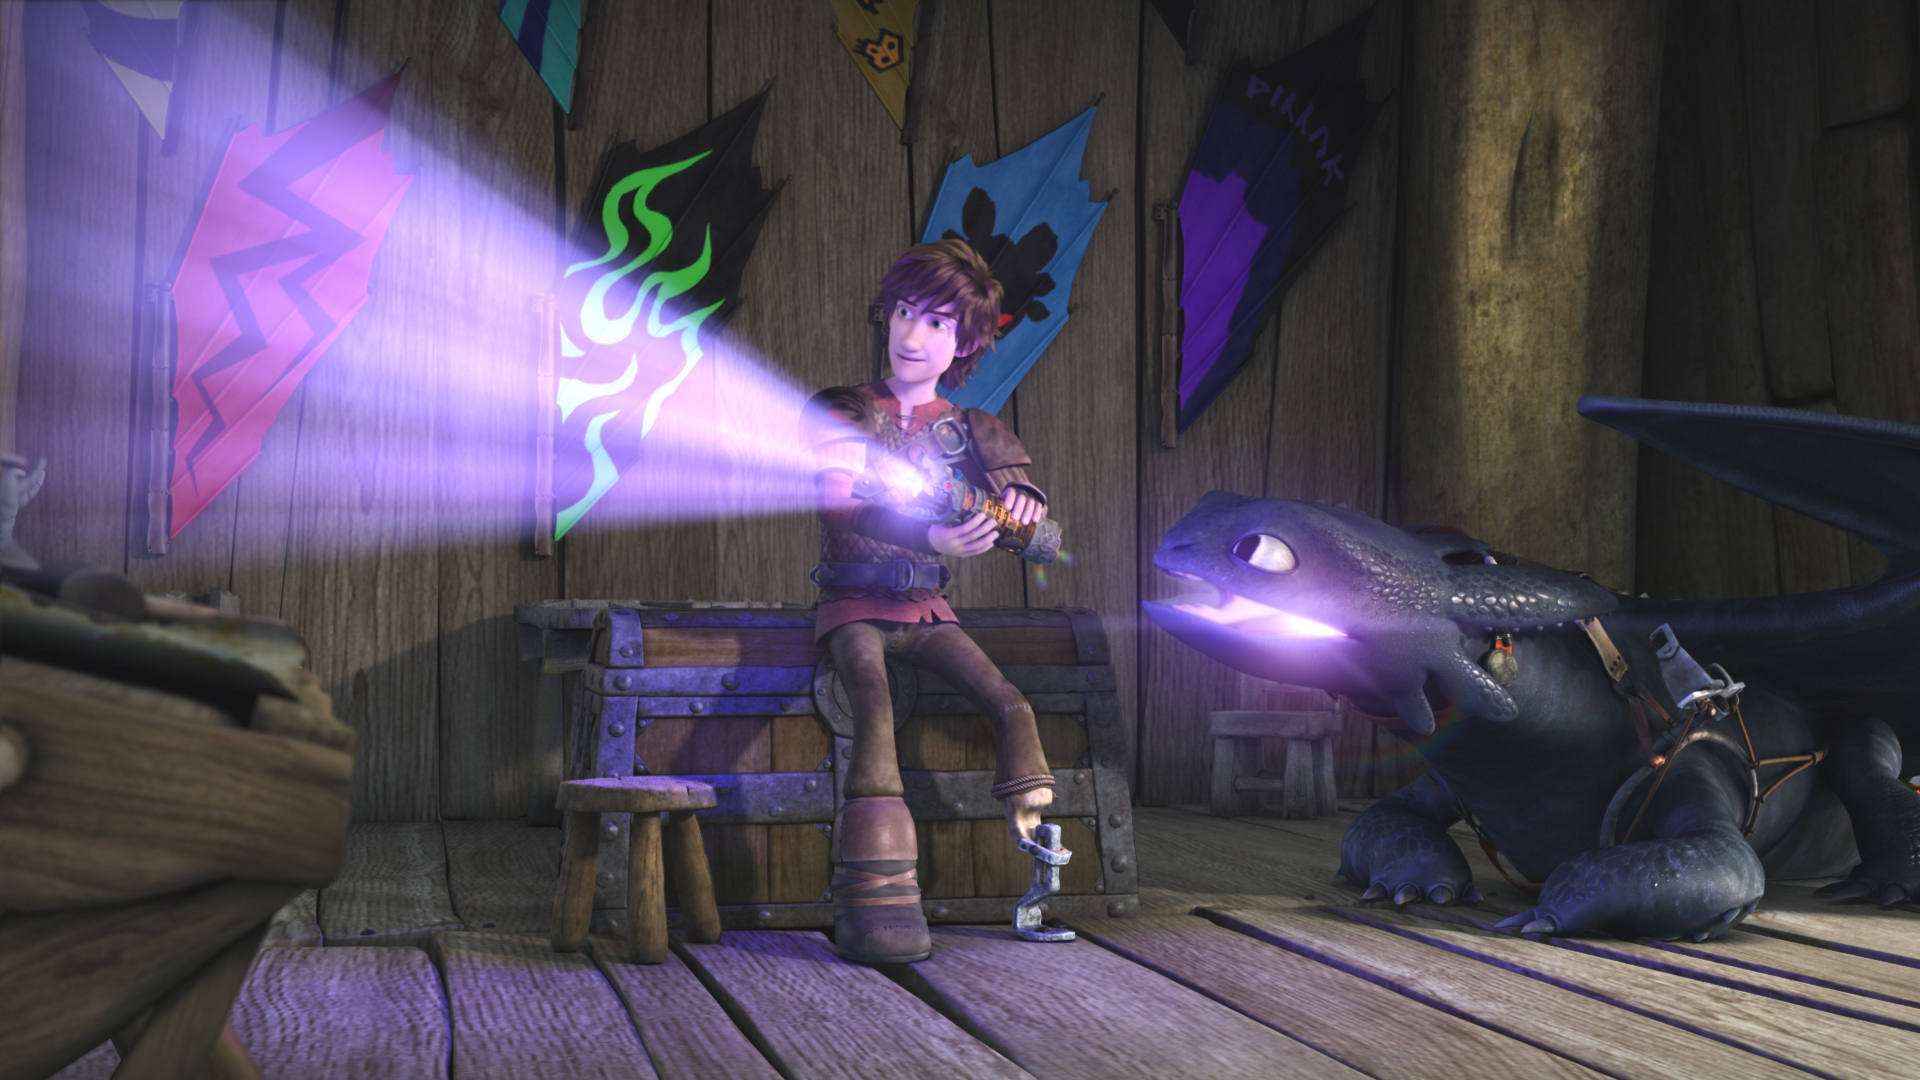 Dragons race to the edge 15 things to know collider dragons race to the edge toothless hiccup ccuart Choice Image